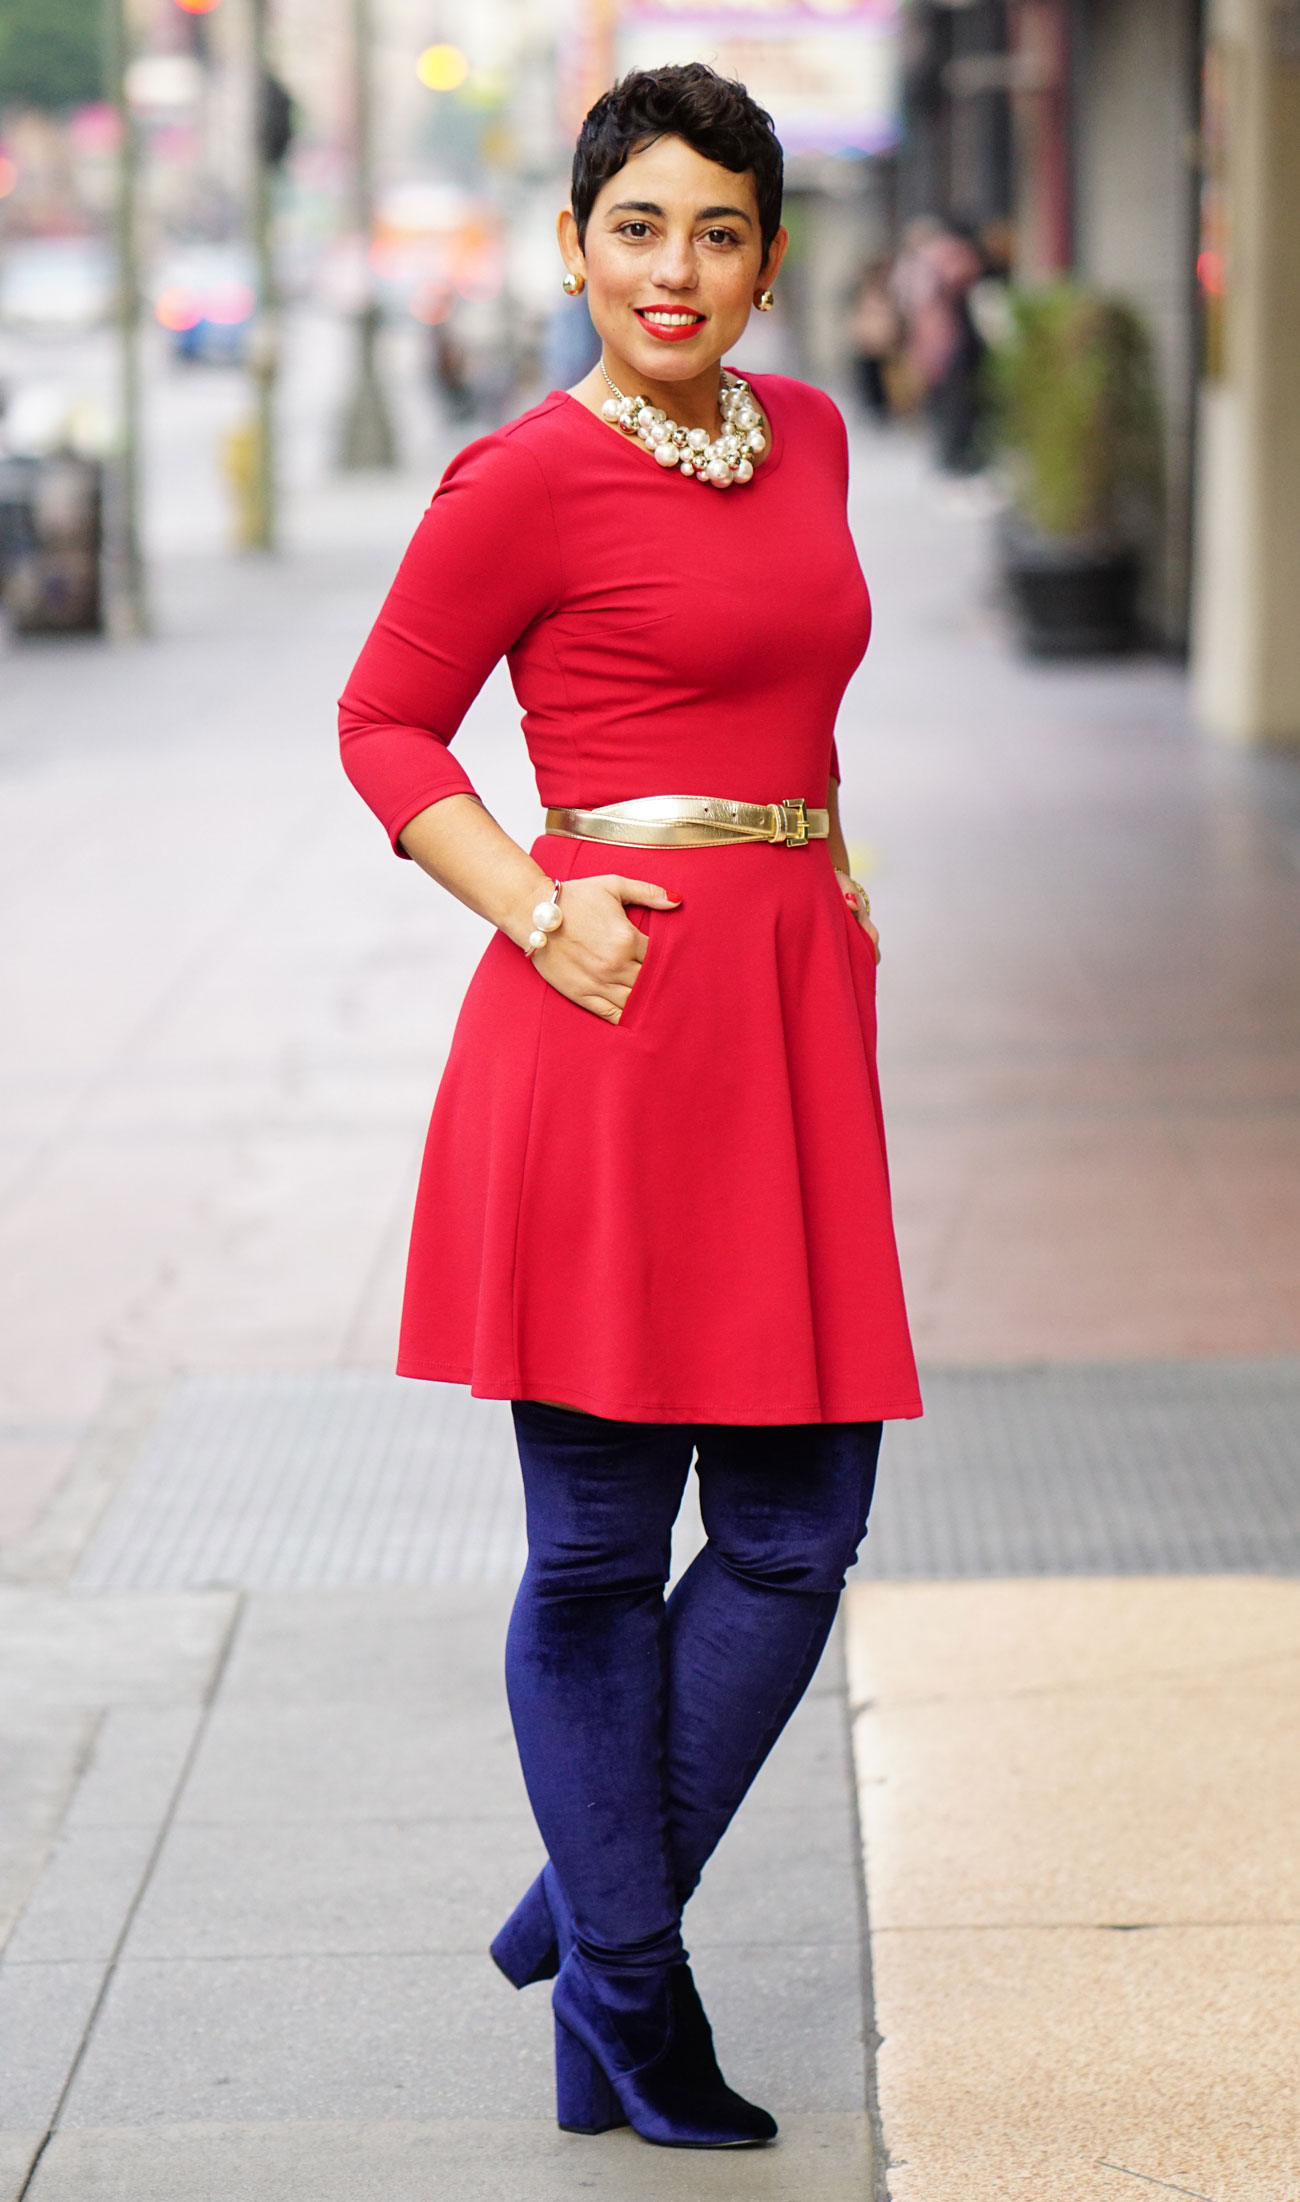 Red Dress Over The Knee Velvet Boots Mimi G Style